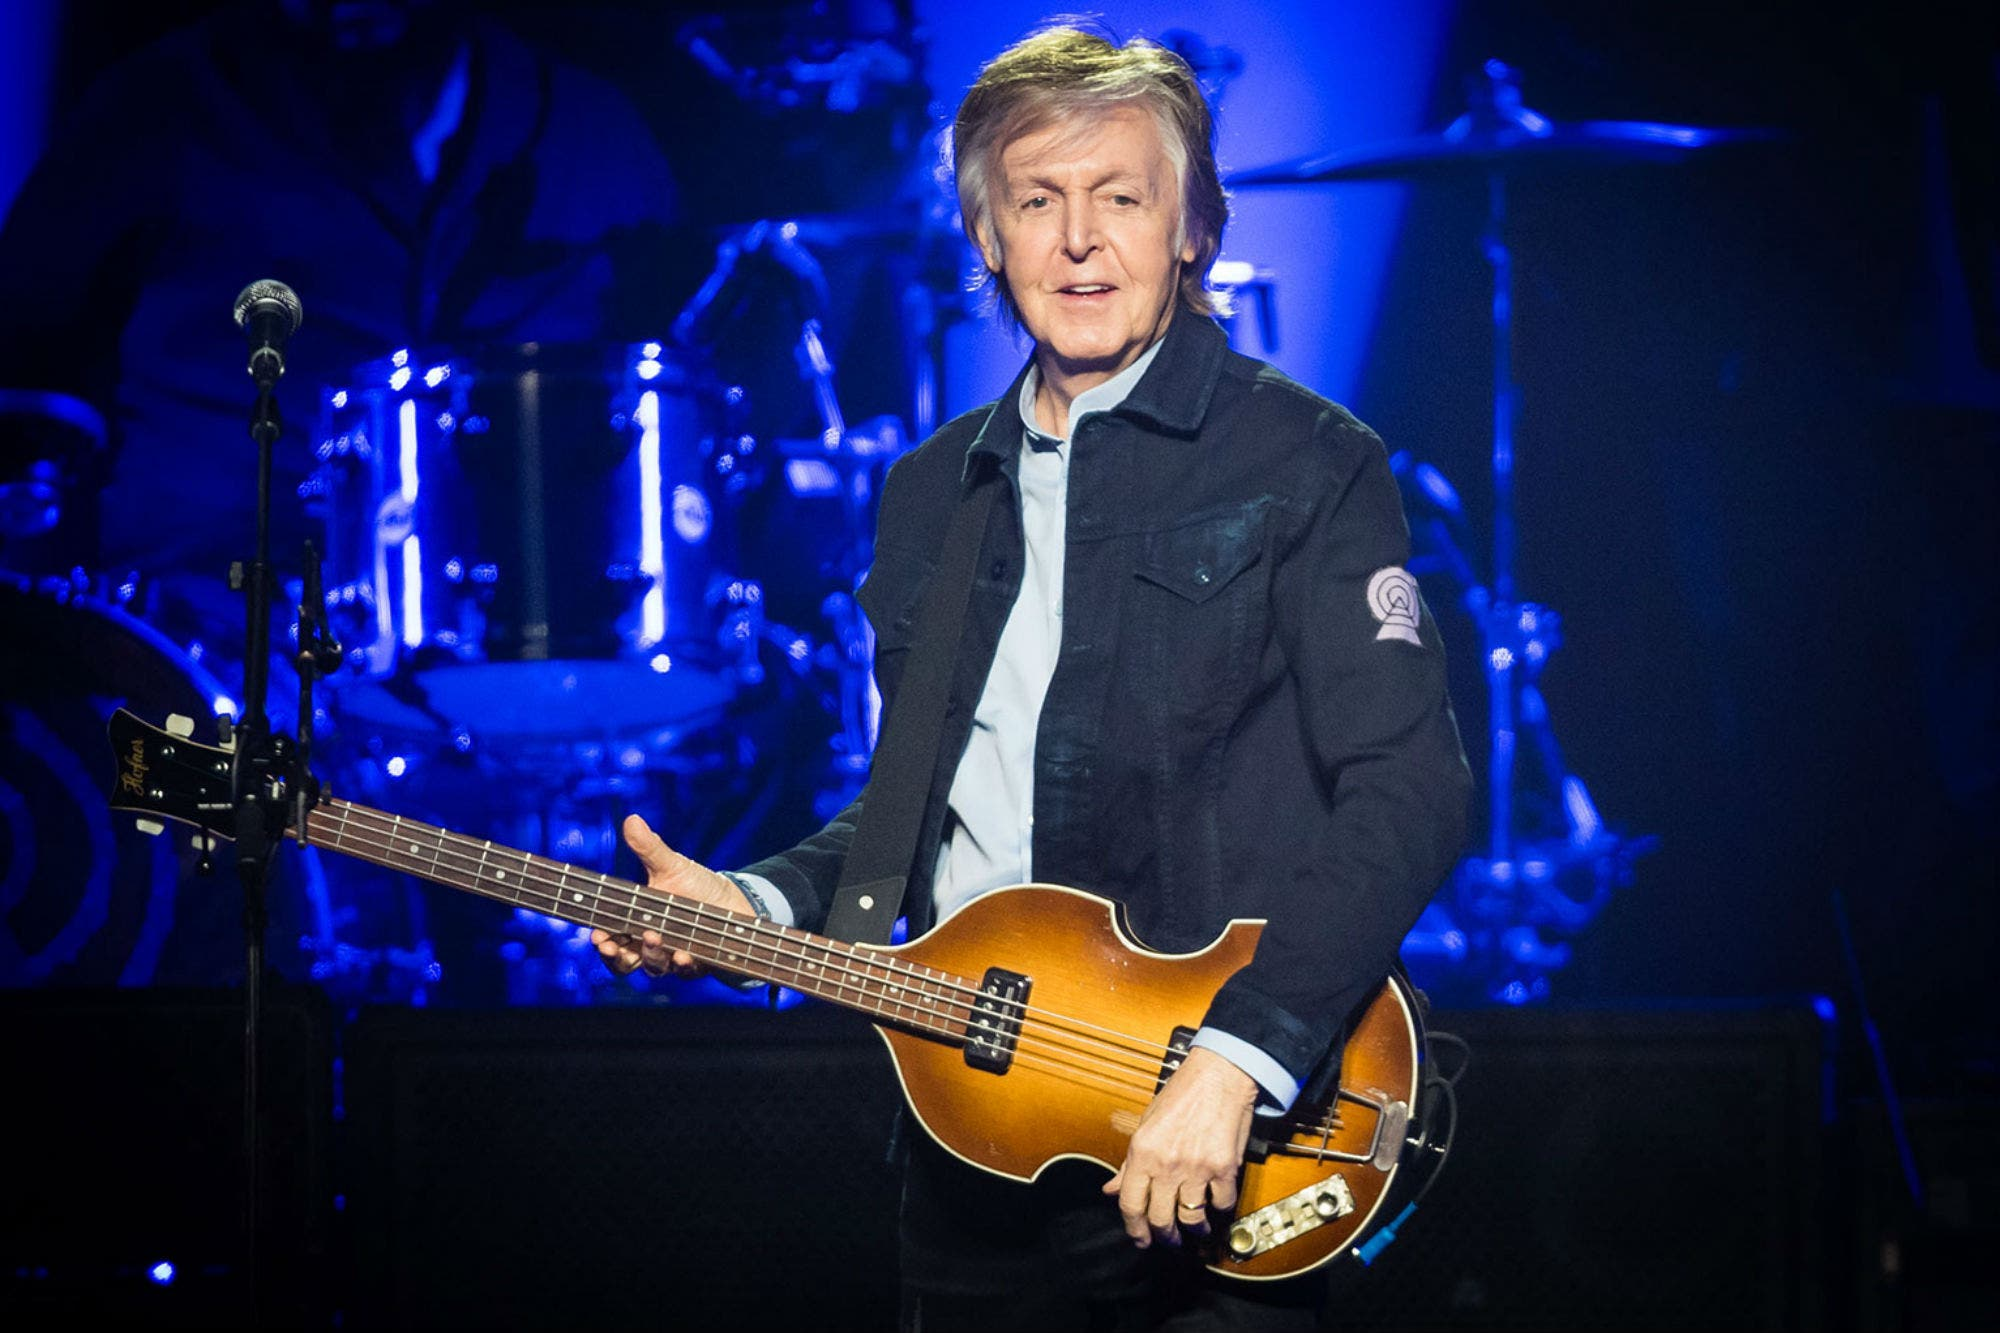 Paul McCartney cerrará un histórico festival de Glastonbury